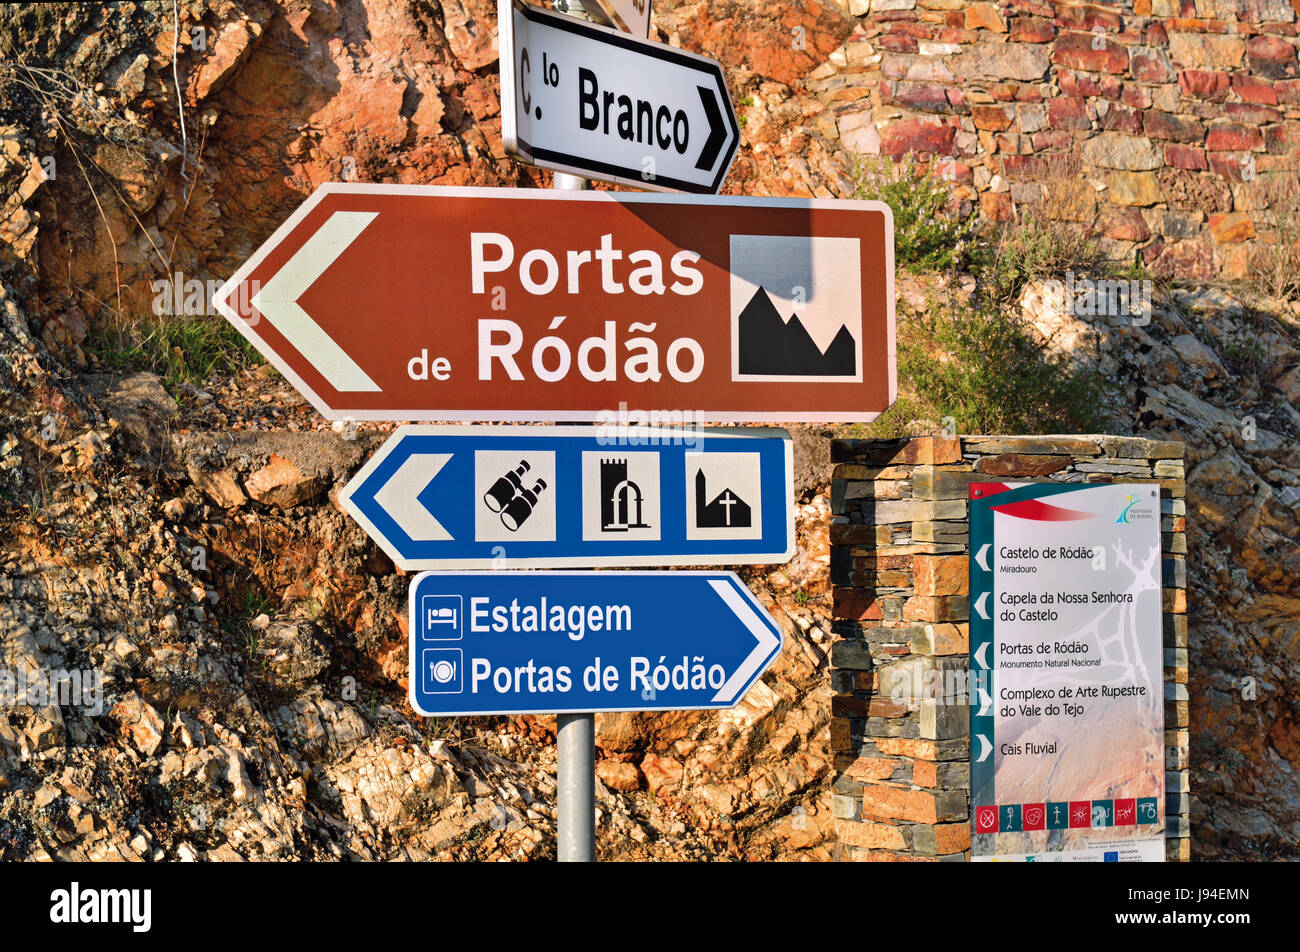 Portugal: Street signal indicating direction to Portas de Rodao, a natural river passage of Tagus river with lateral - Stock Image